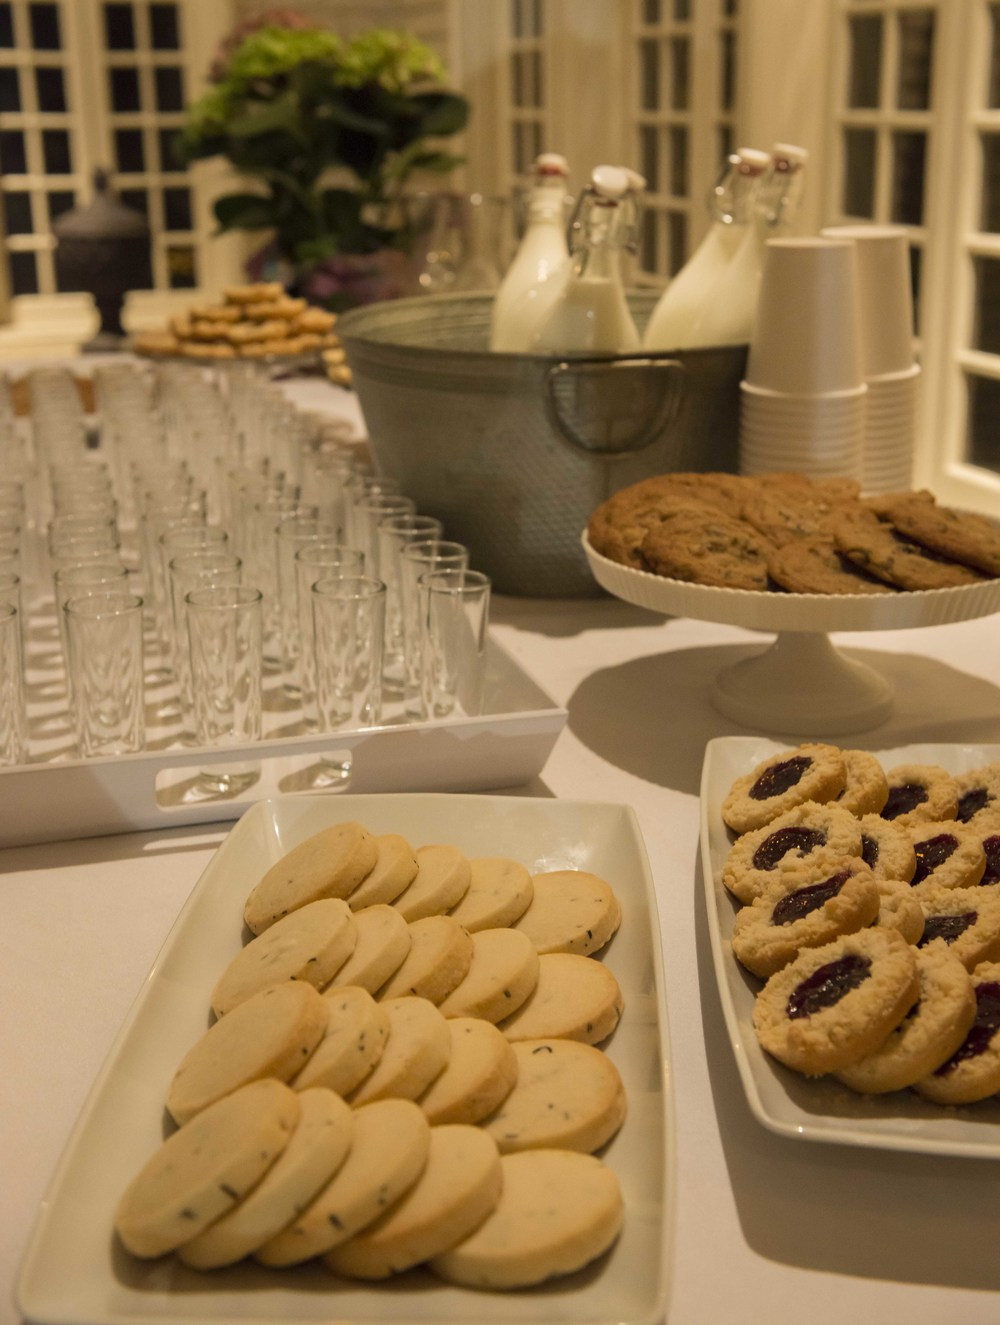 """Kristen Hall of  Feast & Forest provides """"Milk and Cookie Happy Hour for Adults"""" at intermission."""